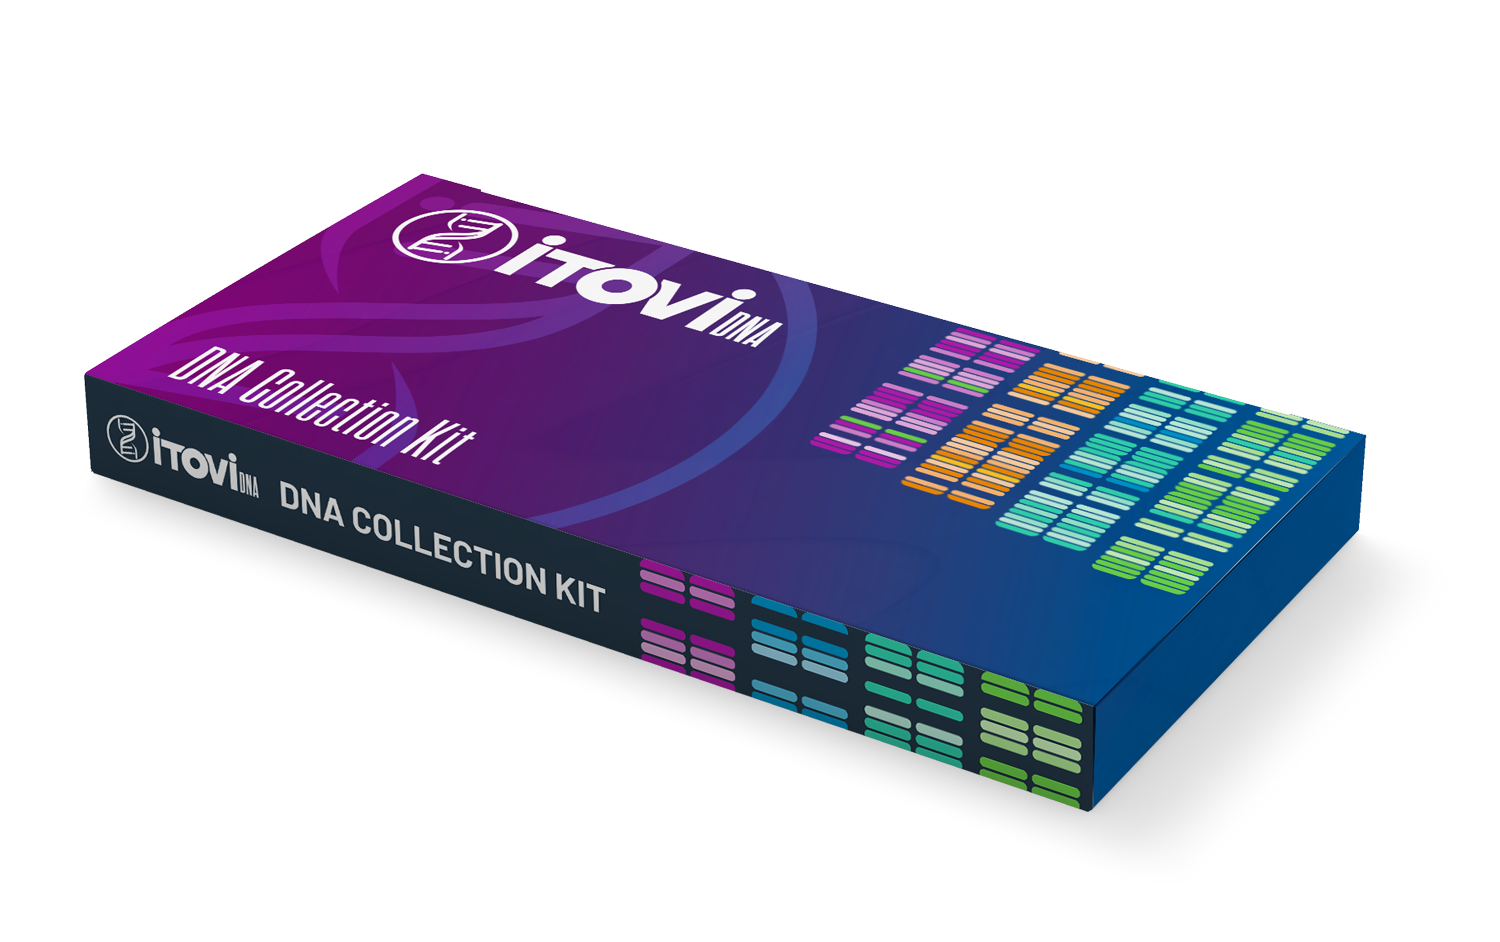 iTOVi DNA Collection Kit